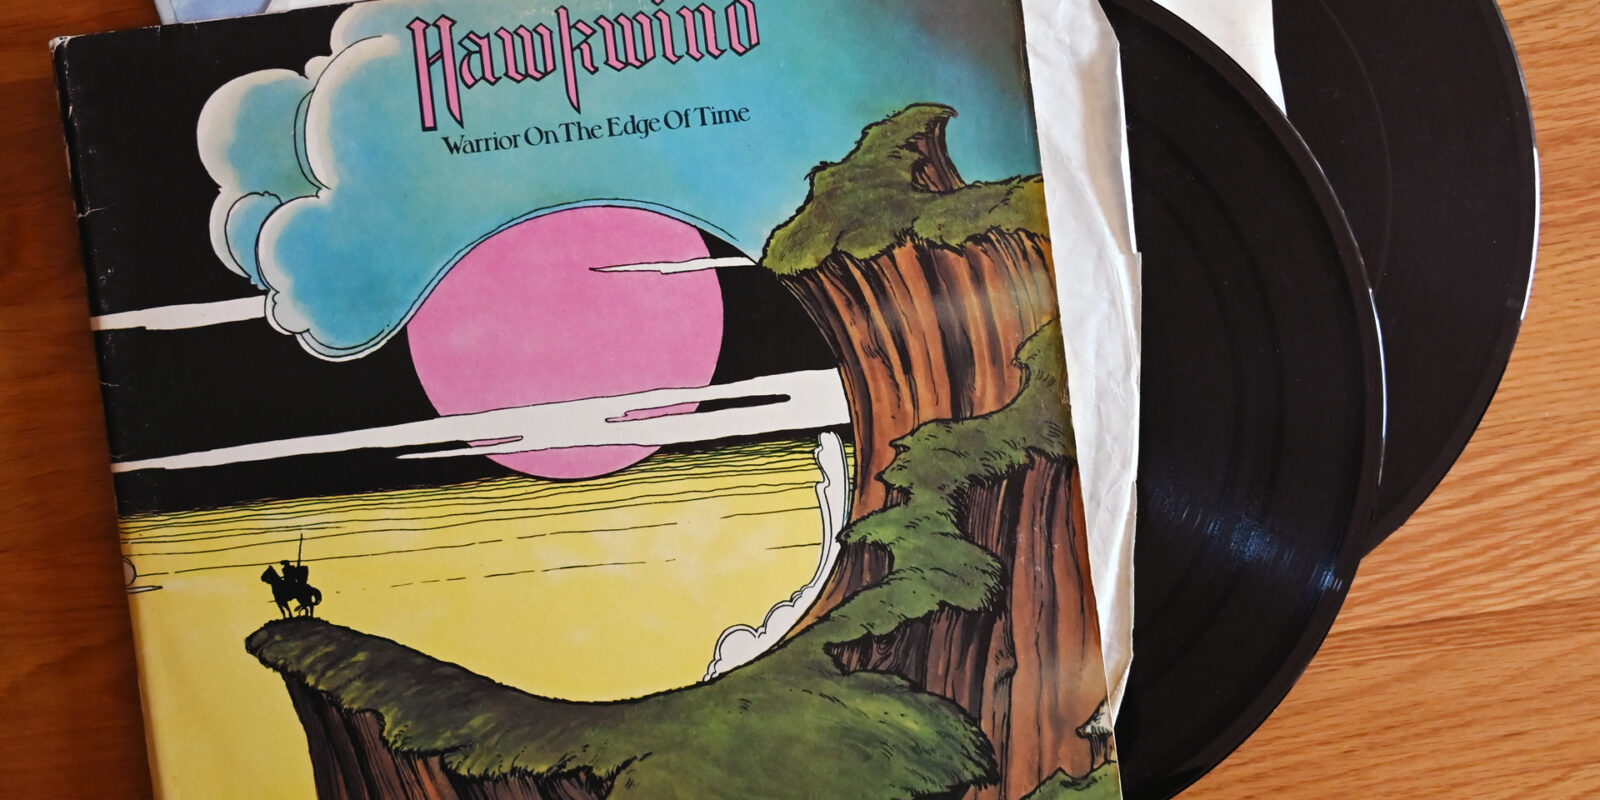 hawkwind warrior of the edge of time